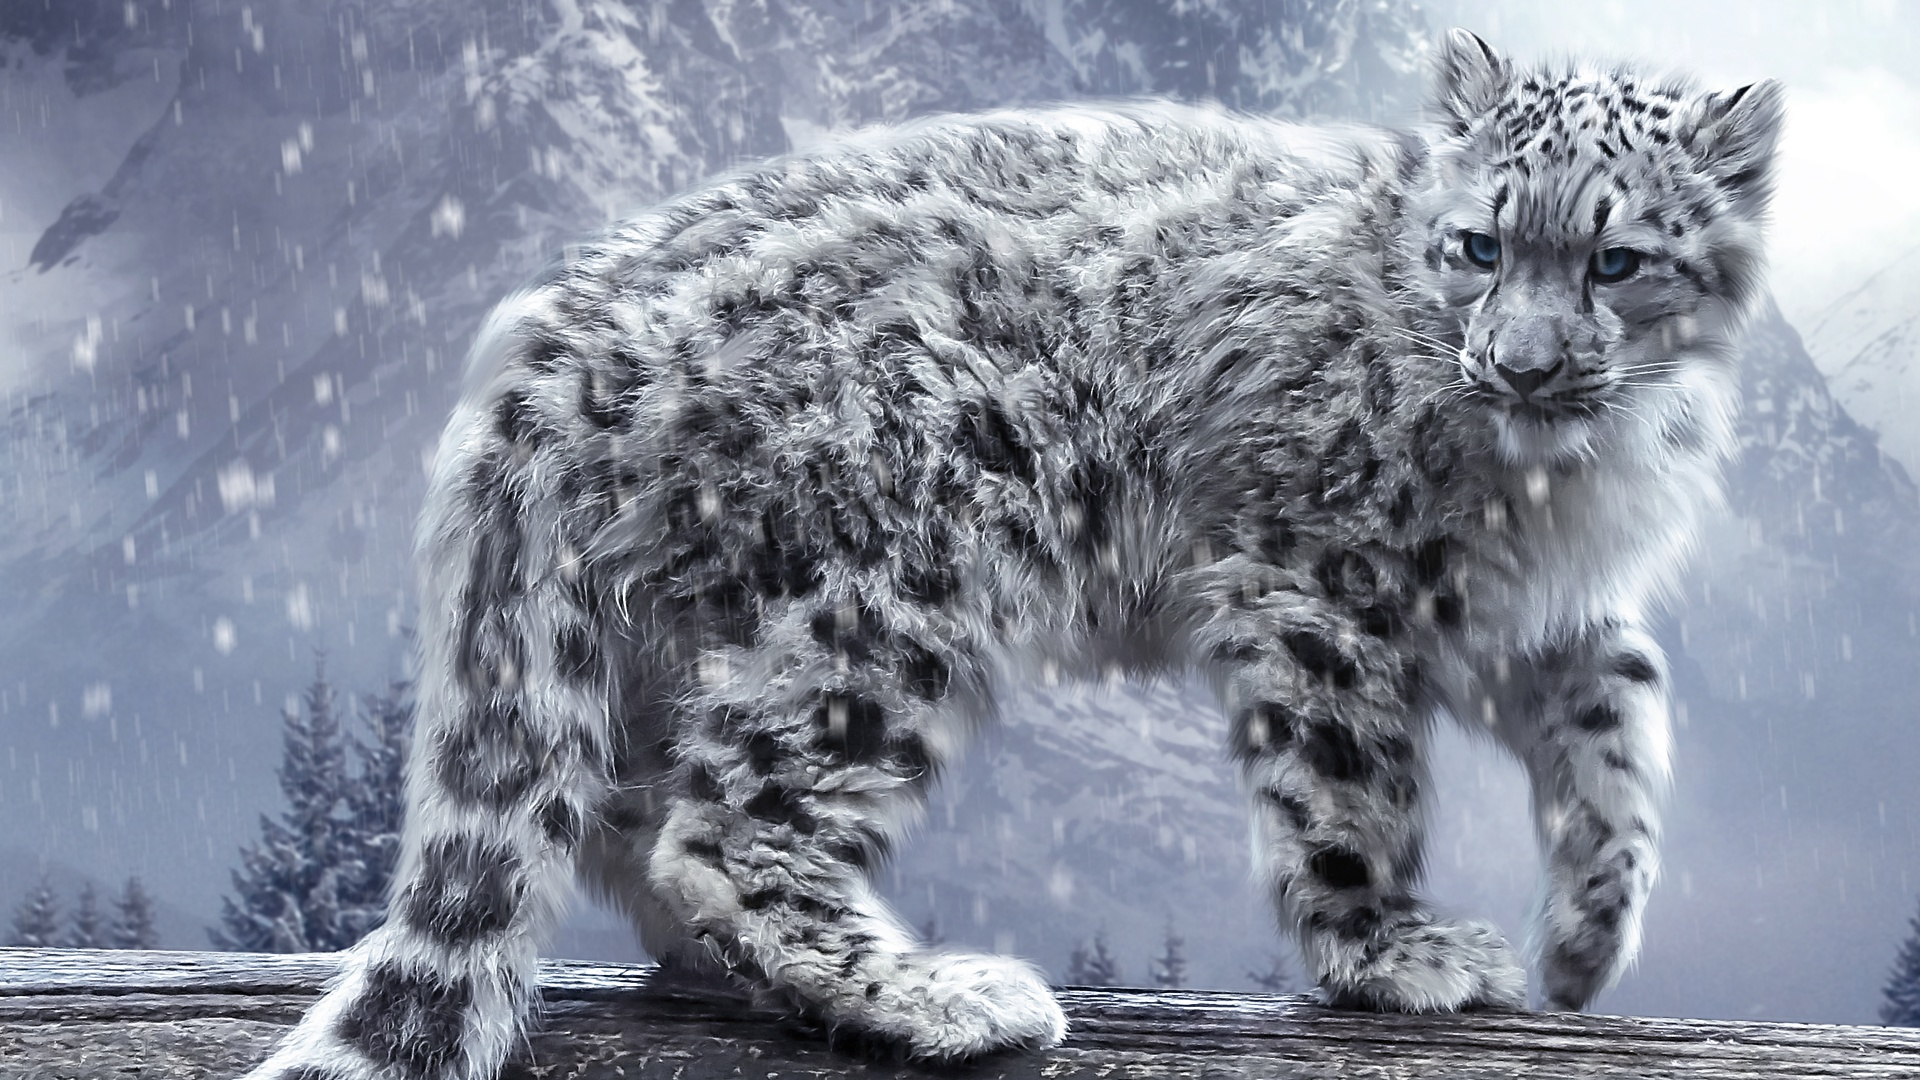 Snow leopard artwork